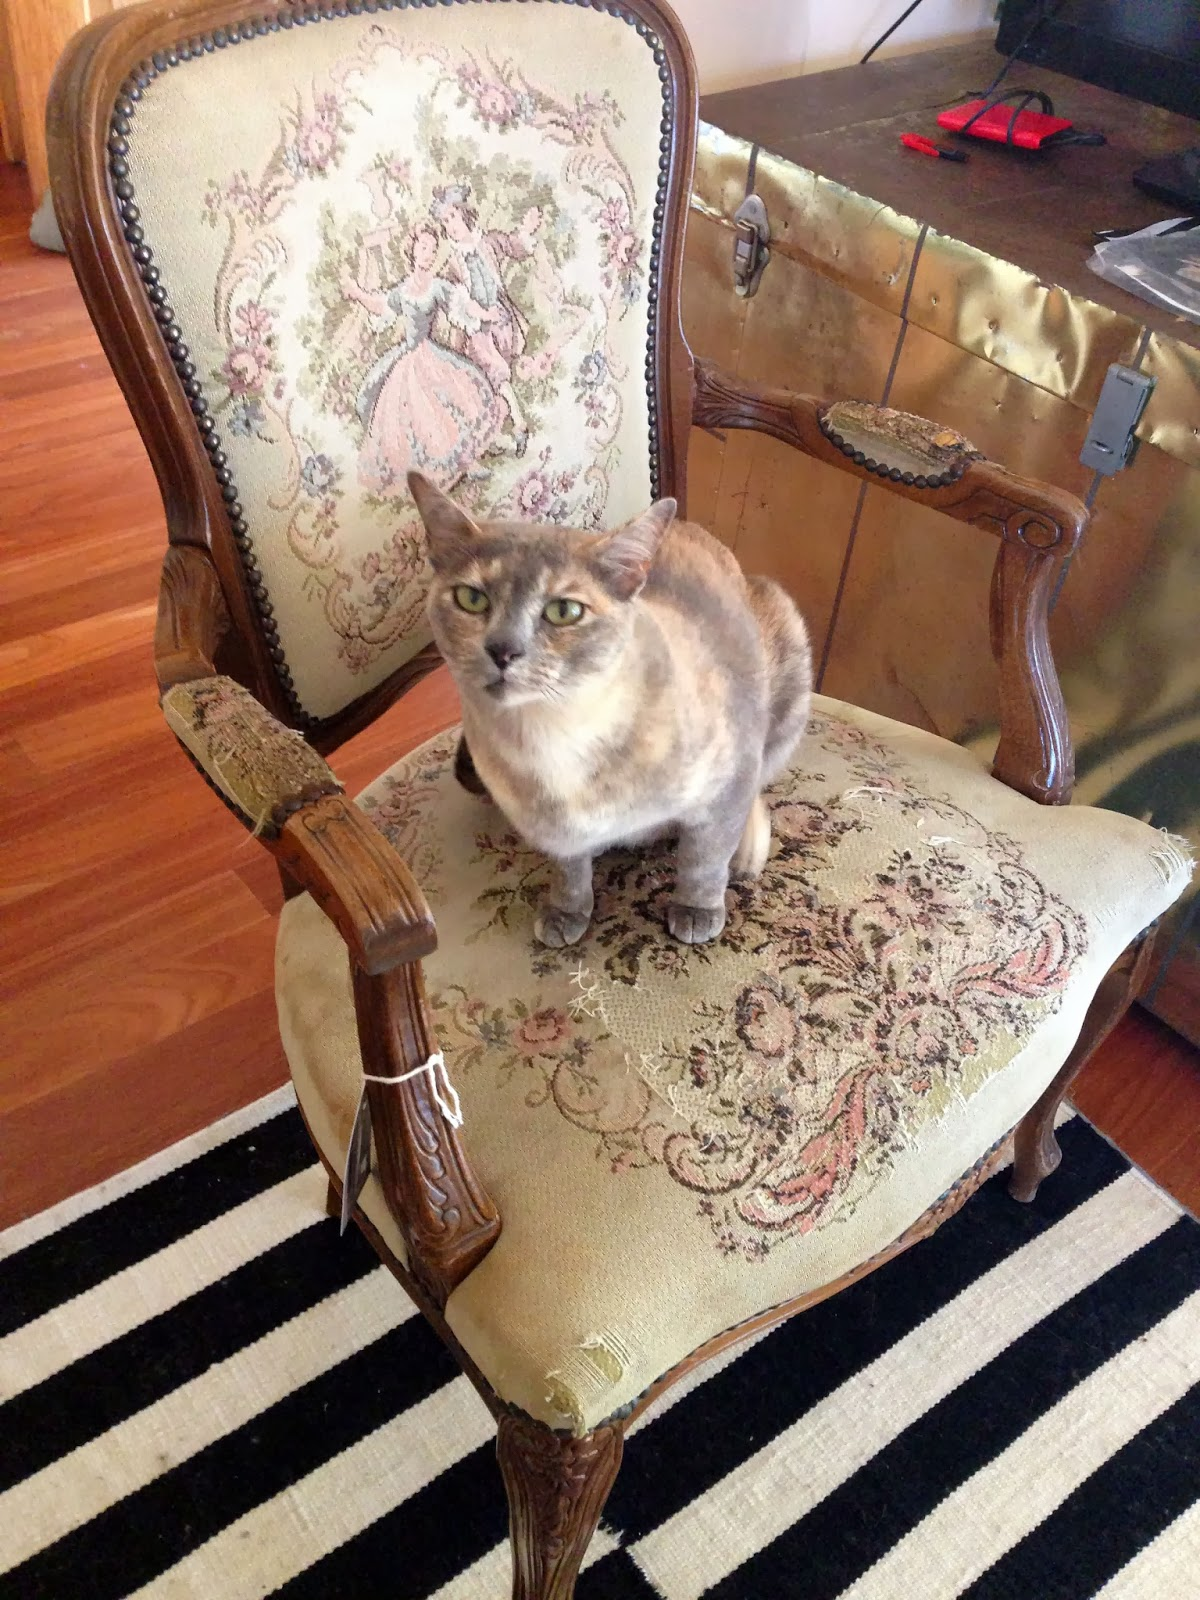 How to reupholster a louis chair - Chair As It Was When Purchased Except Without The Cat